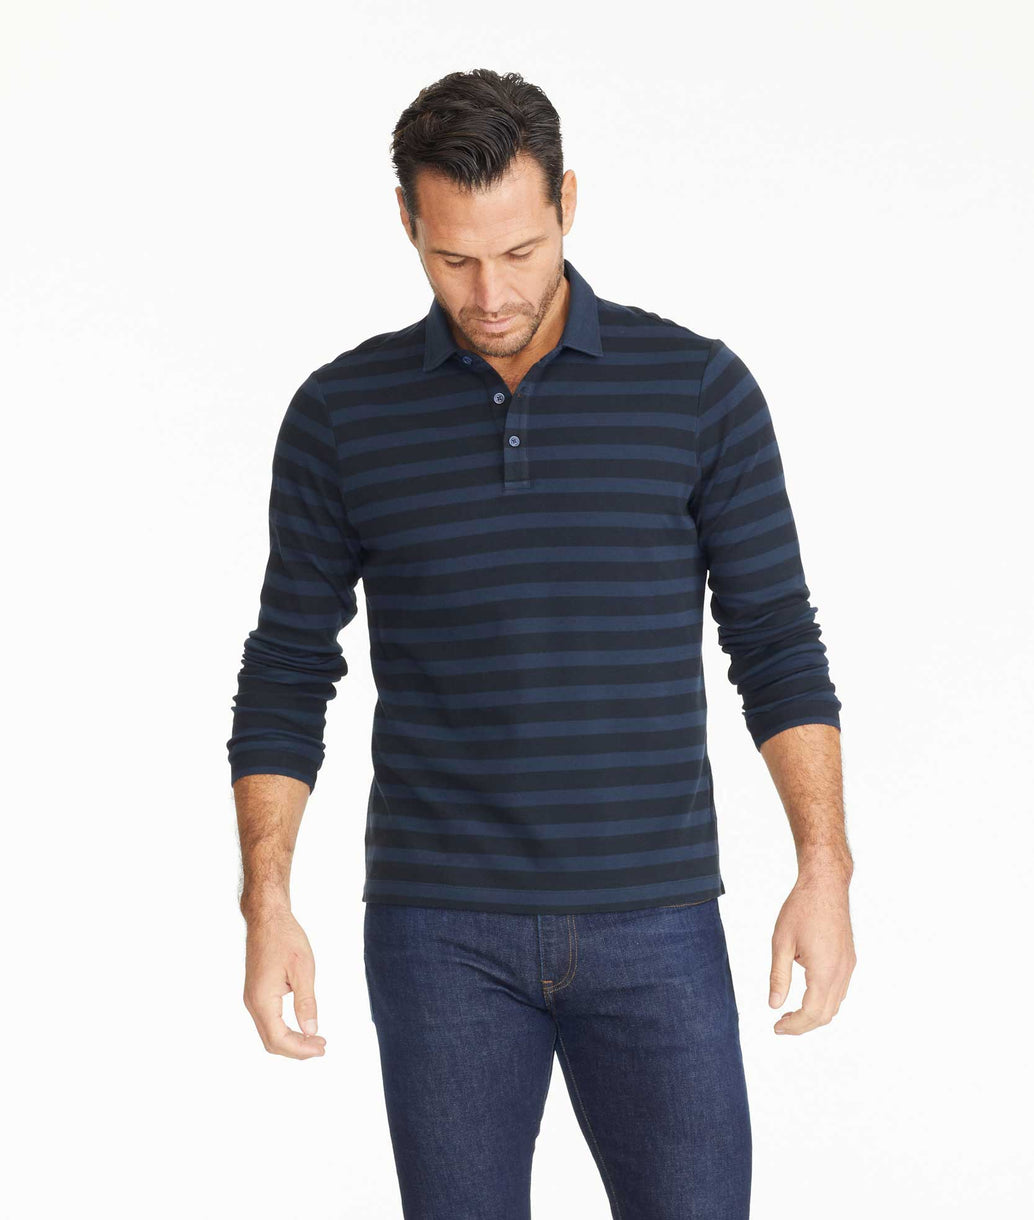 Model wearing a Striped Long-Sleeve Polo